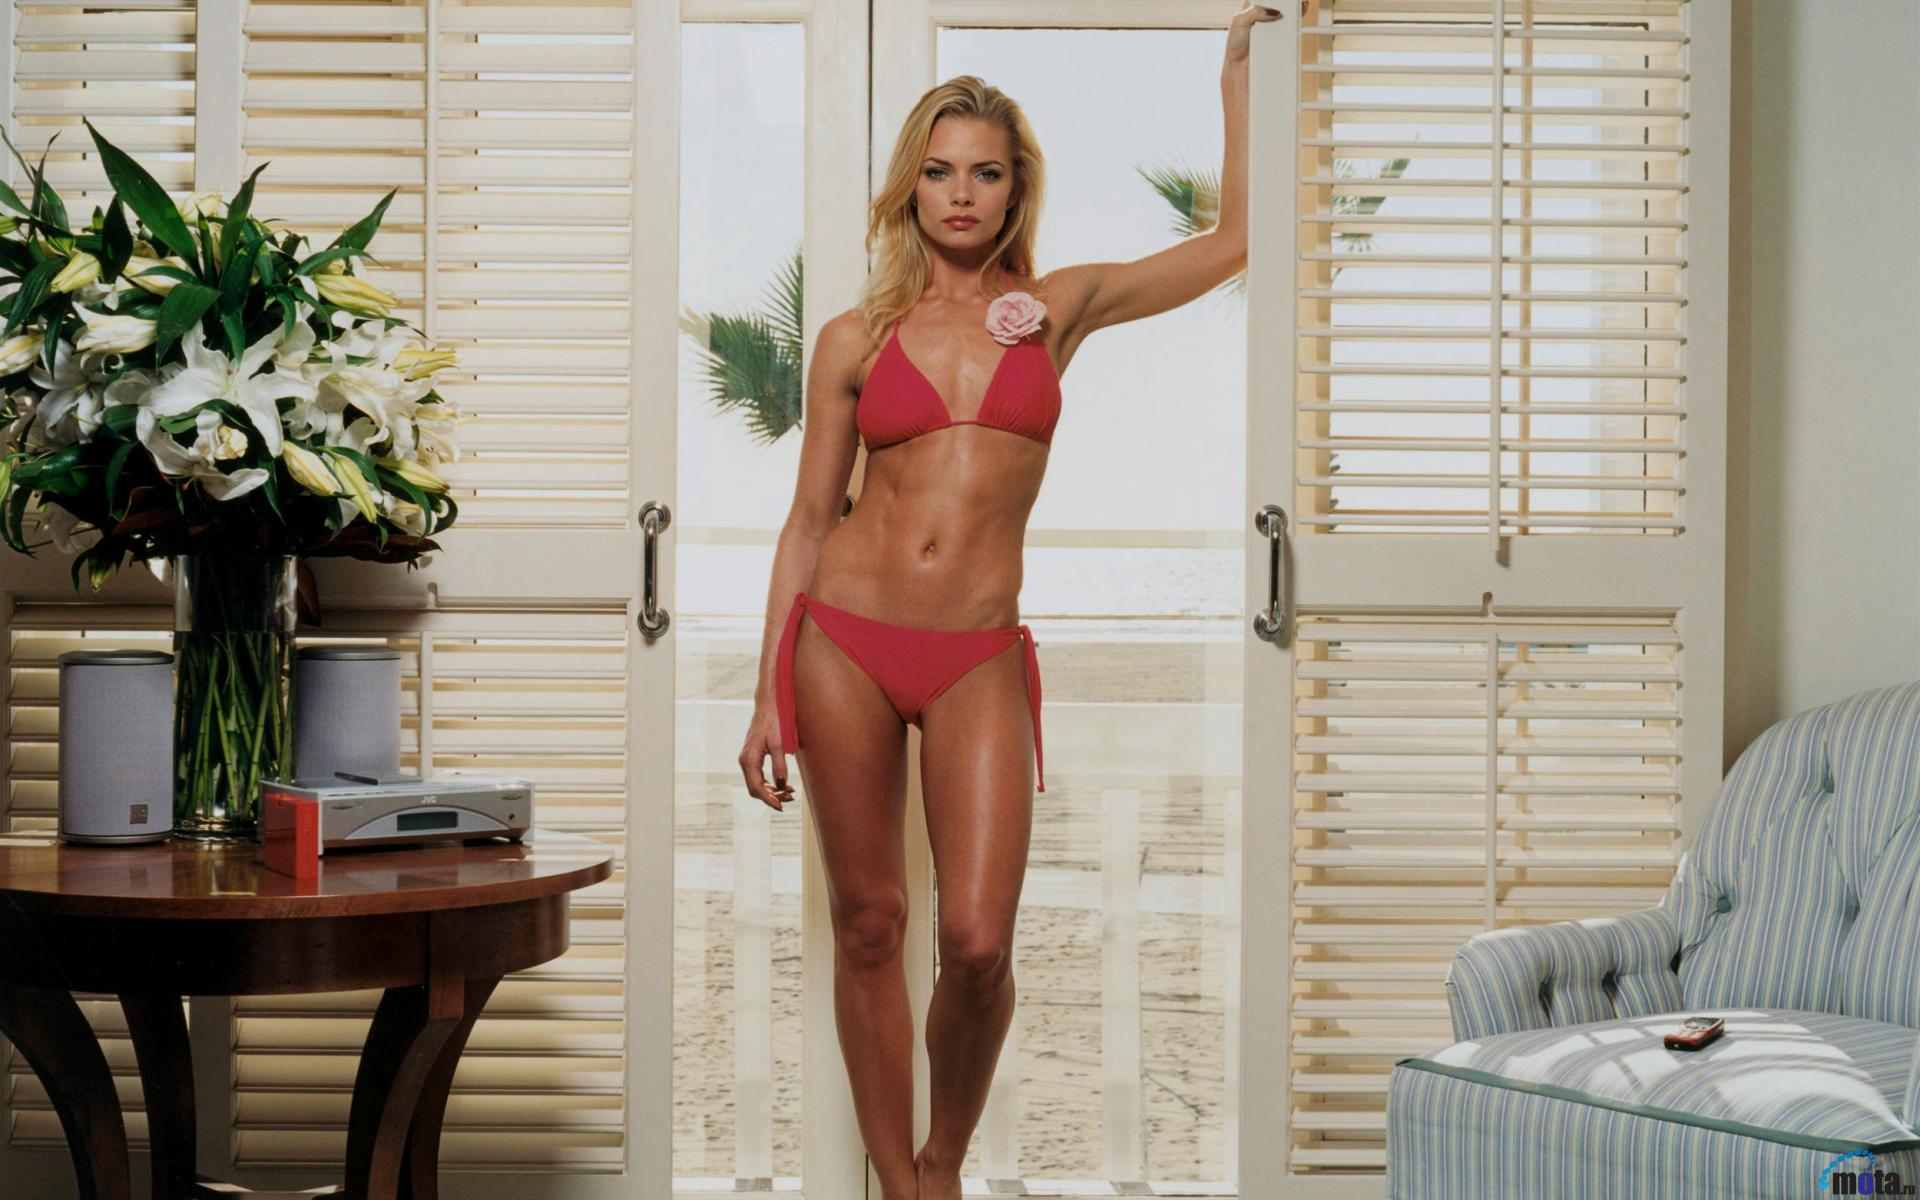 1920x1200 - Jaime Pressly Wallpapers 34